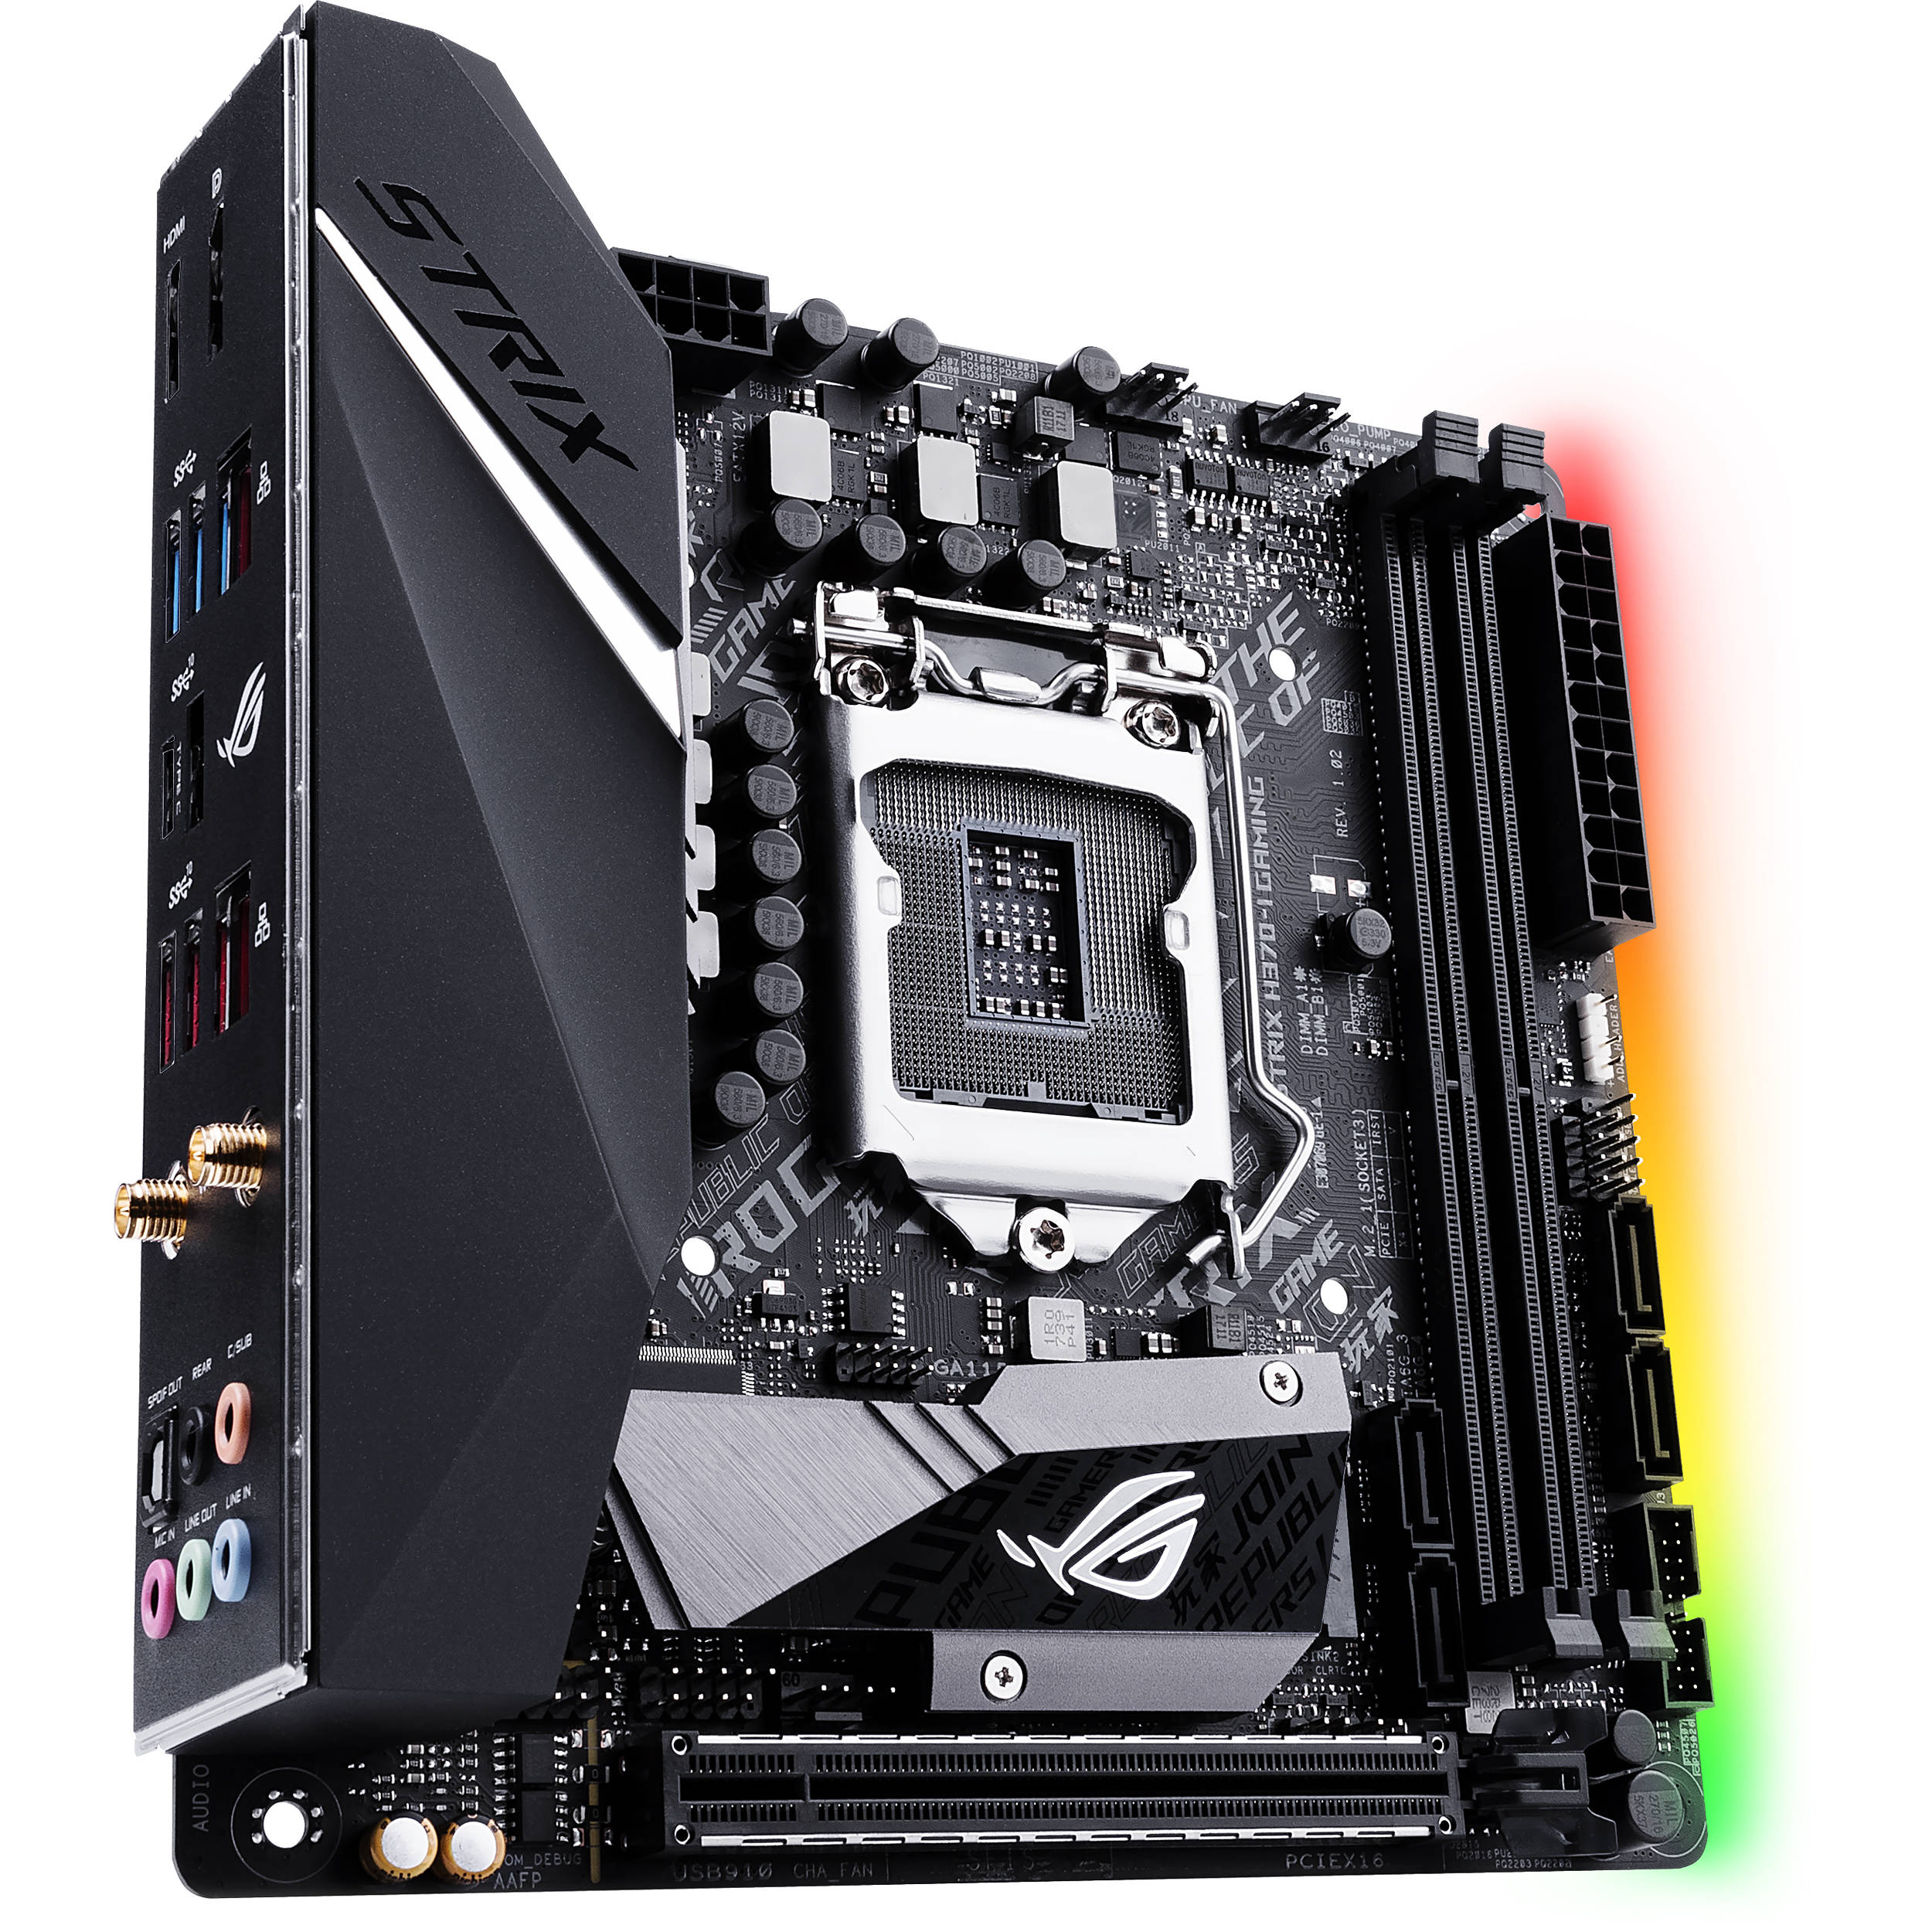 UPgrade Aopen XCube 945(c) Asus_rog_strix_h370_i_gaming_republic_of_gamers_strix_1398130